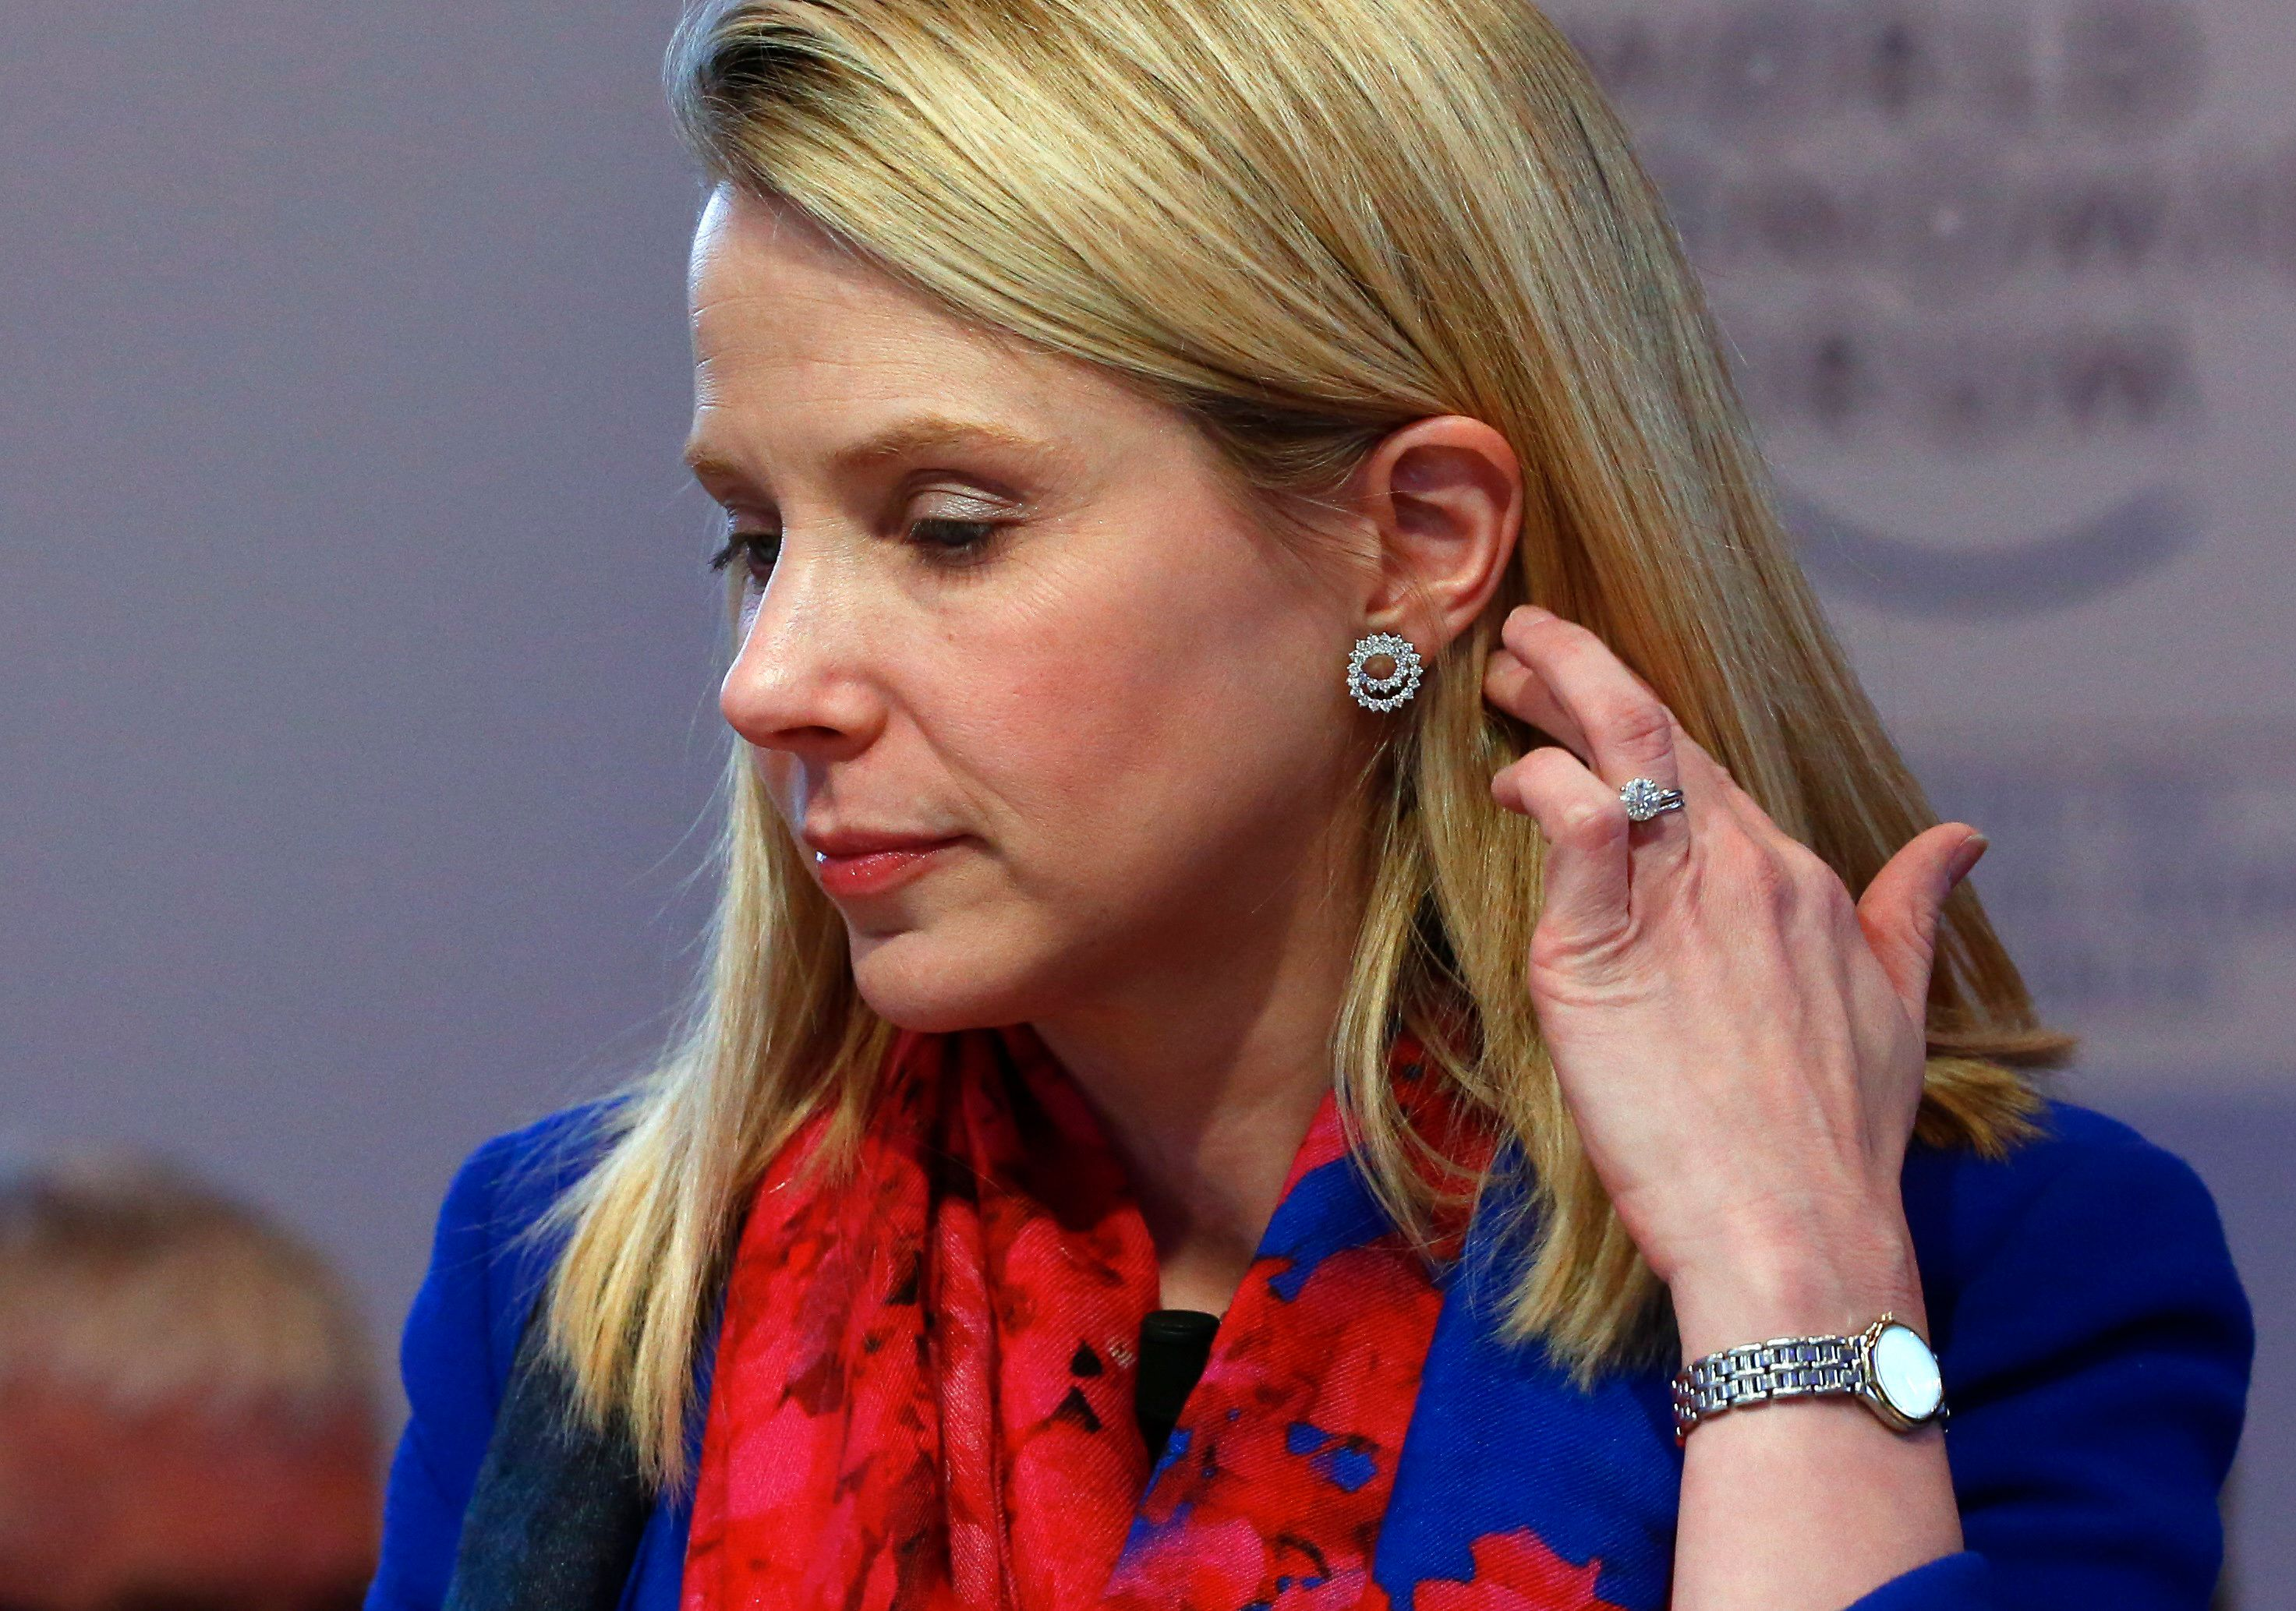 "Yahoo CEO Marissa Mayer gestures before the session ""In Tech We Trust"" in the Swiss mountain resort of Davos January 22, 2015. More than 1,500 business leaders and 40 heads of state or government attend the Jan. 21-24 meeting of the World Economic Forum (WEF) to network and discuss big themes, from the price of oil to the future of the Internet. This year they are meeting in the midst of upheaval, with security forces on heightened alert after attacks in Paris, the European Central Bank considering a radical government bond-buying programme and the safe-haven Swiss franc rocketing.                                          REUTERS/Ruben Sprich (SWITZERLAND  - Tags: BUSINESS POLITICS)"